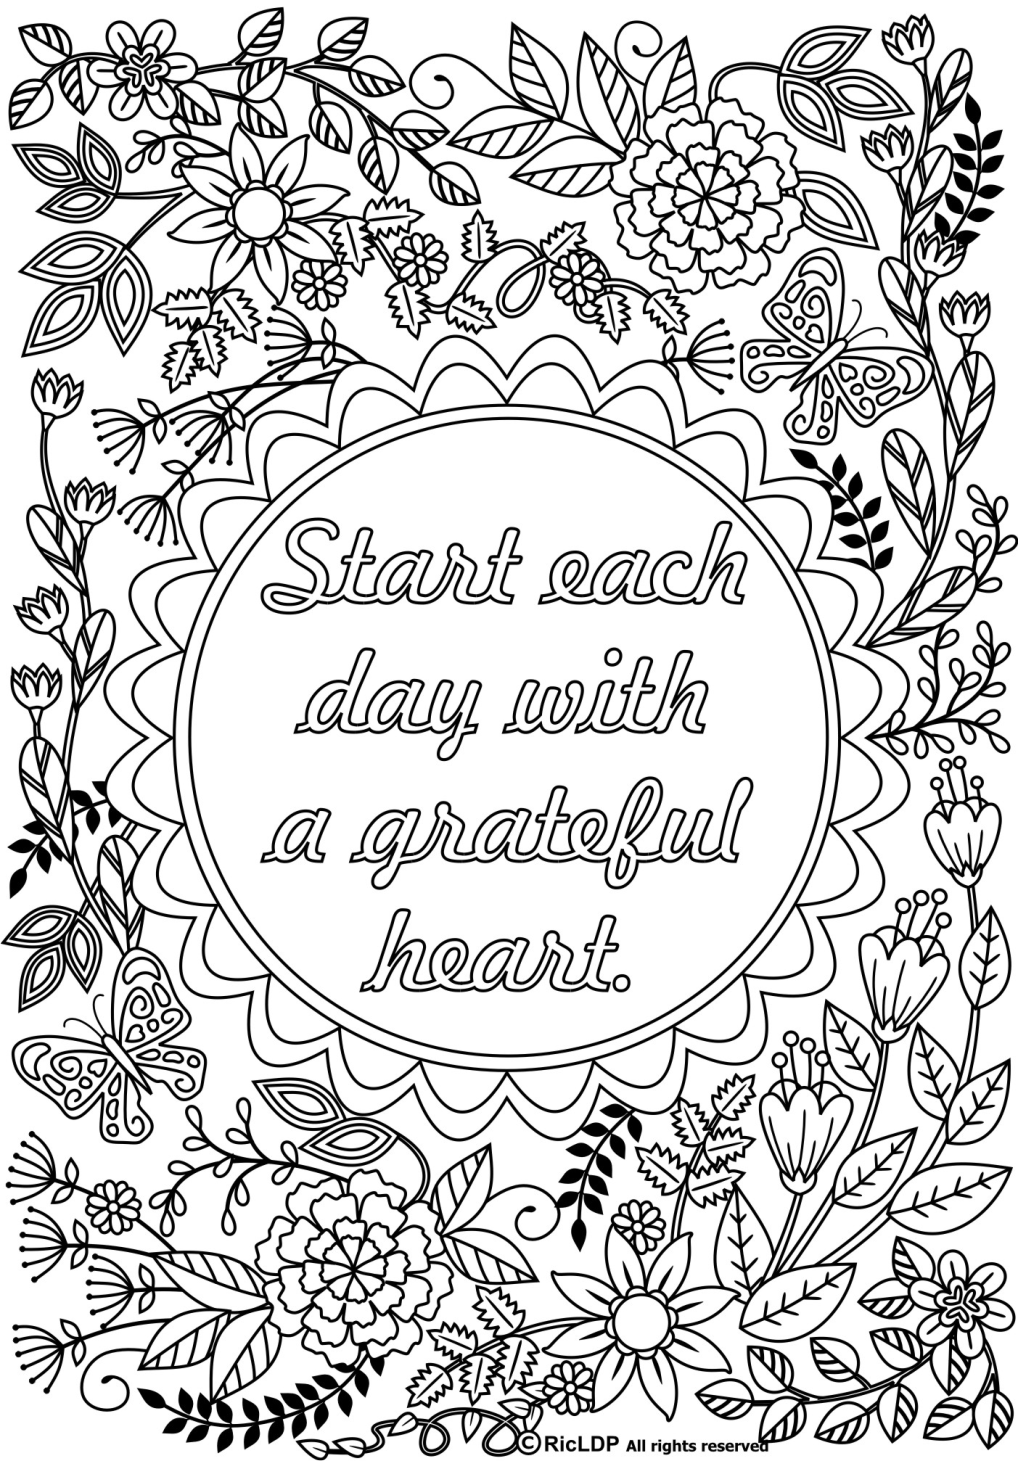 start each day  a grateful heart  adult coloring